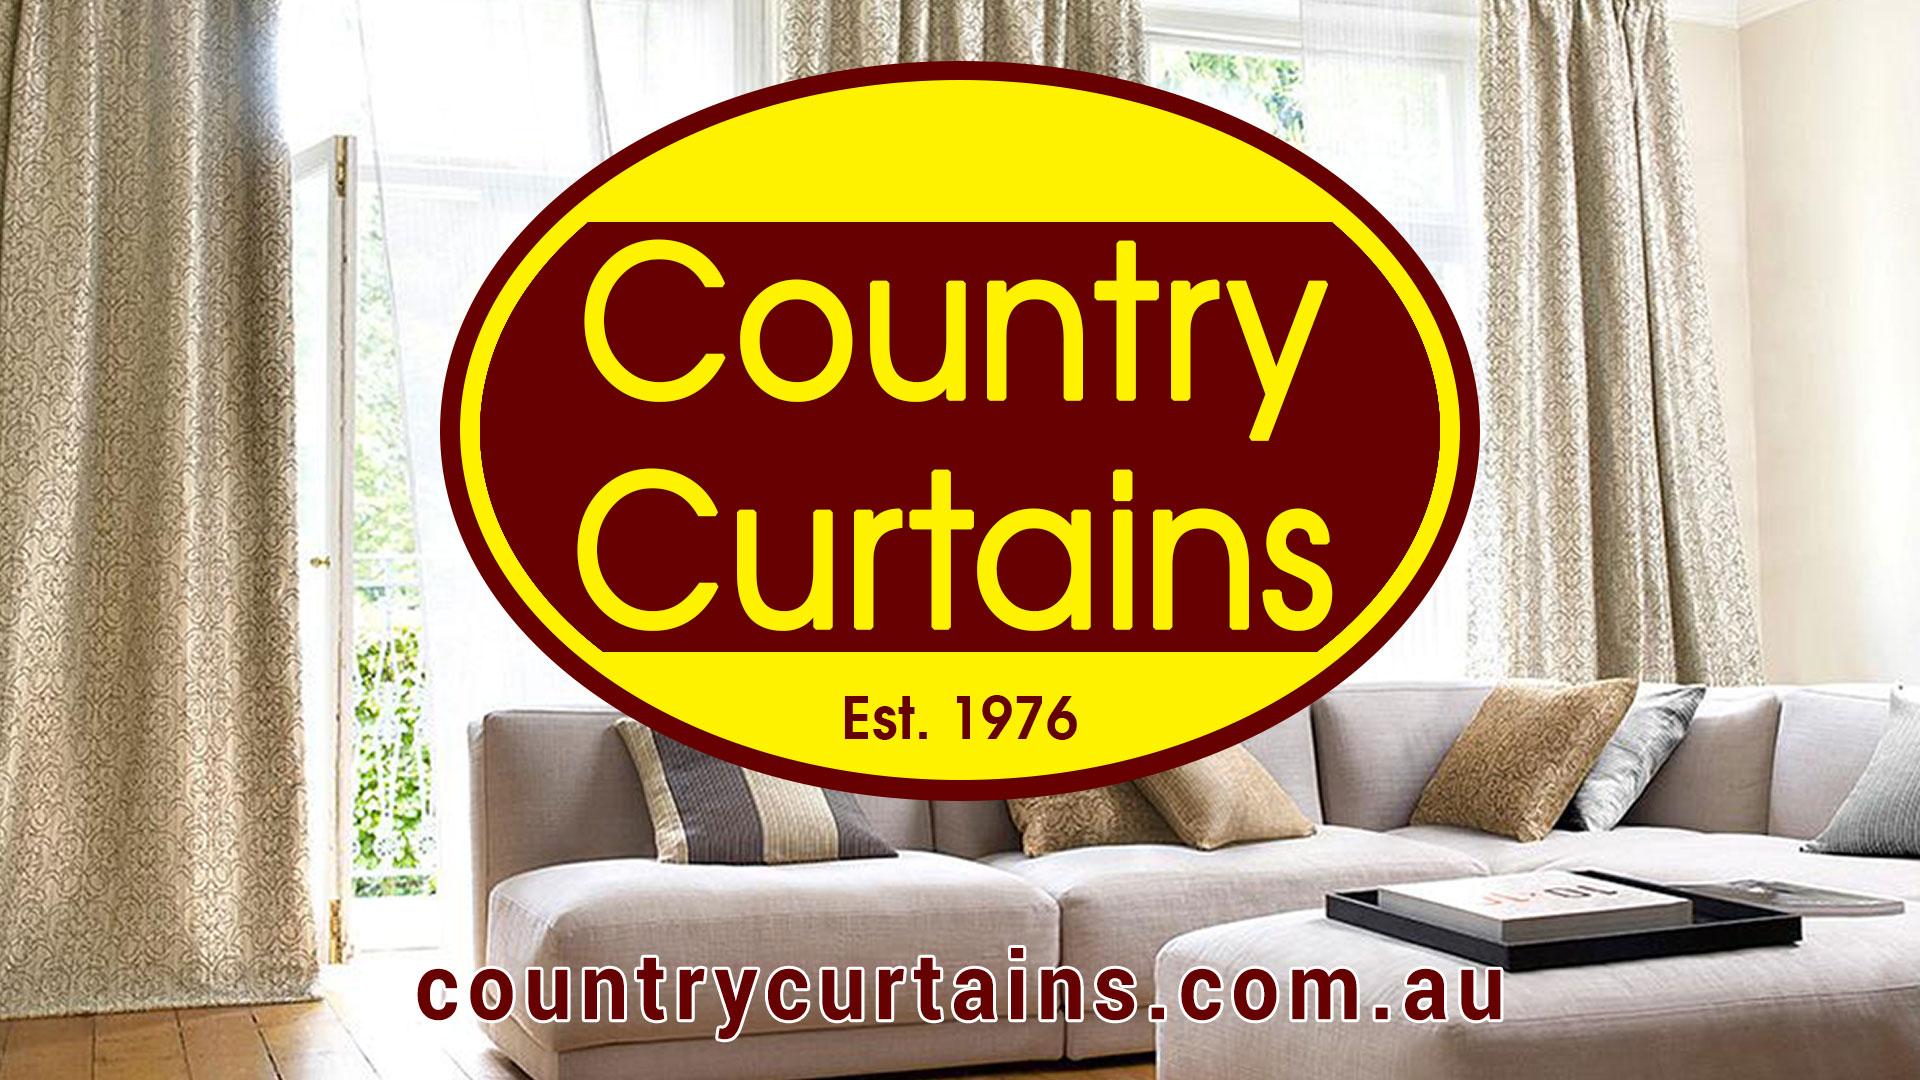 Country curtains logo - Country Curtains Bairnsdale Curtains Blinds Awnings For East Gippsland